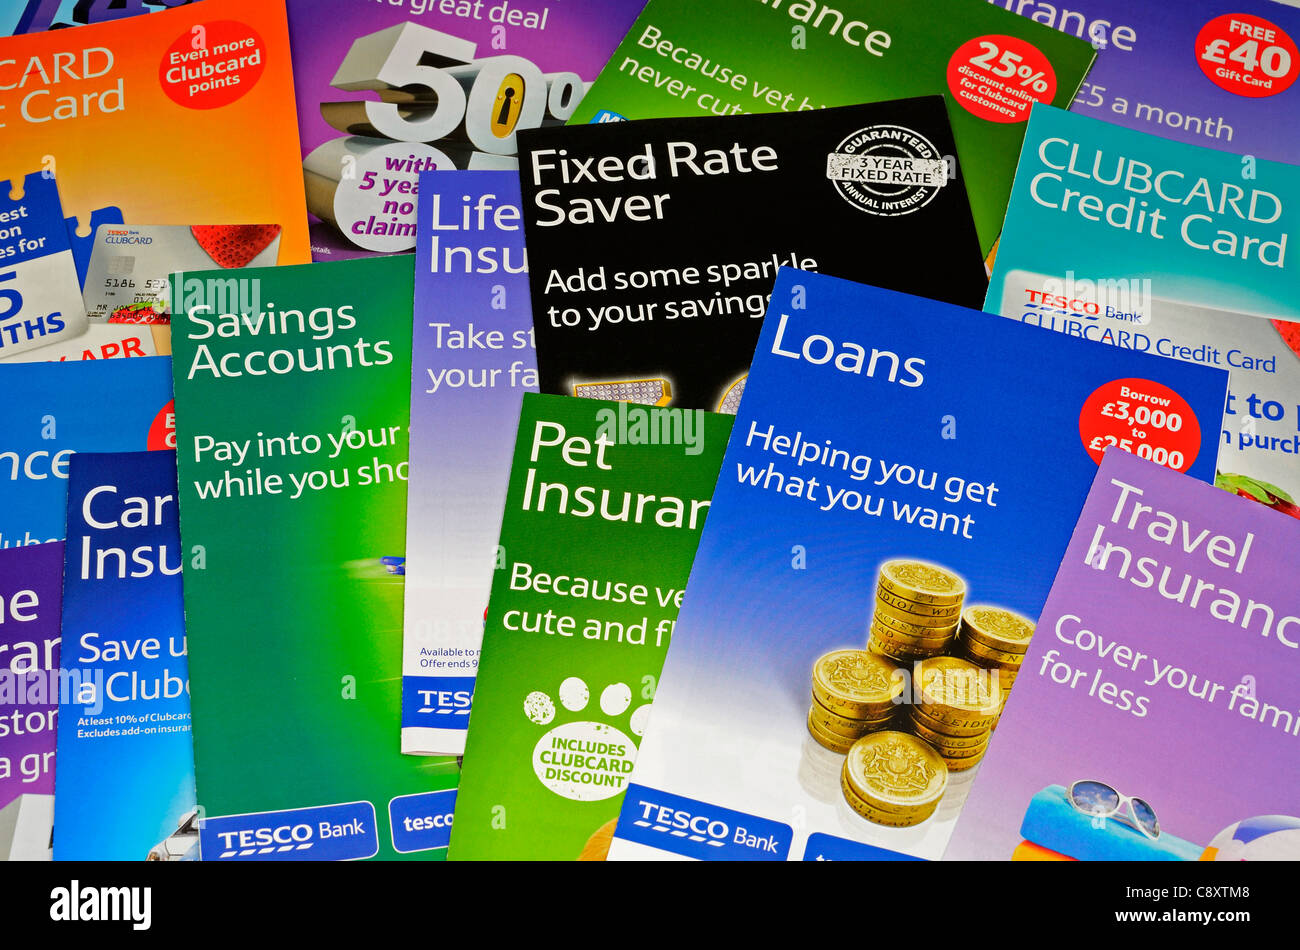 Financial leaflets from Tesco - Stock Image